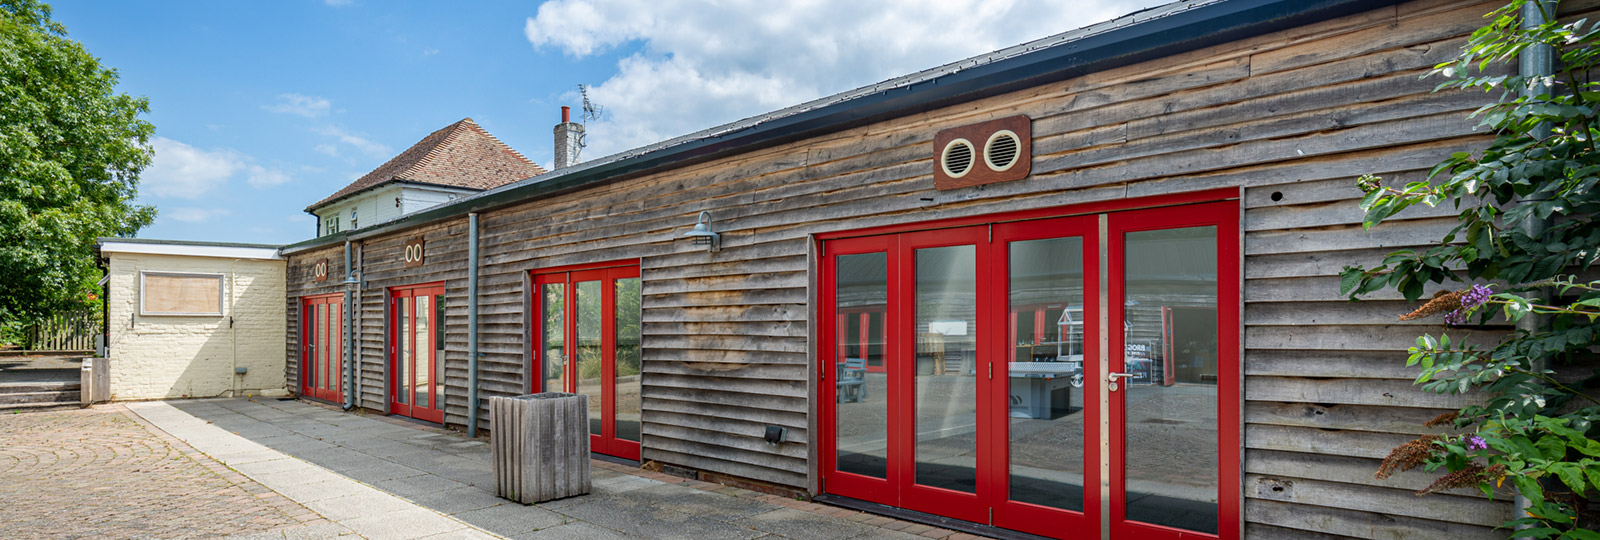 Commercial business units available for rent at Brogdale Farm